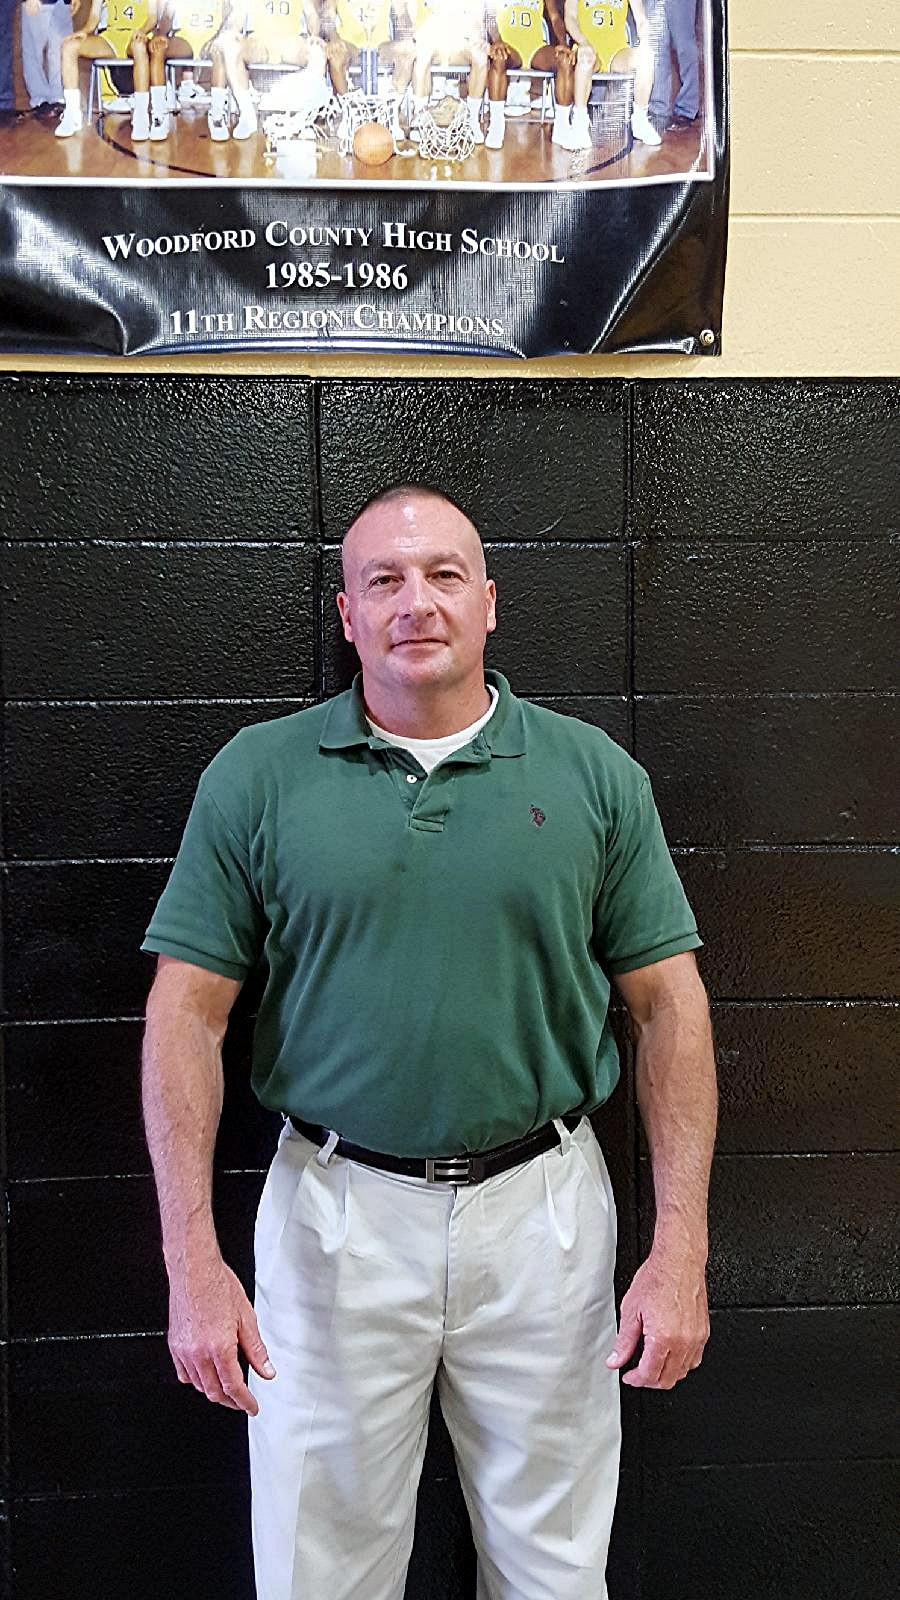 STEVE JACO was named the new head coach of the Woodford County High School girls' basketball team on Wednesday, May 17. He replaces Jay Lucas, the longtime head coach of the Lady Jackets, who announced his retirement on March 8. (Photo submitted)